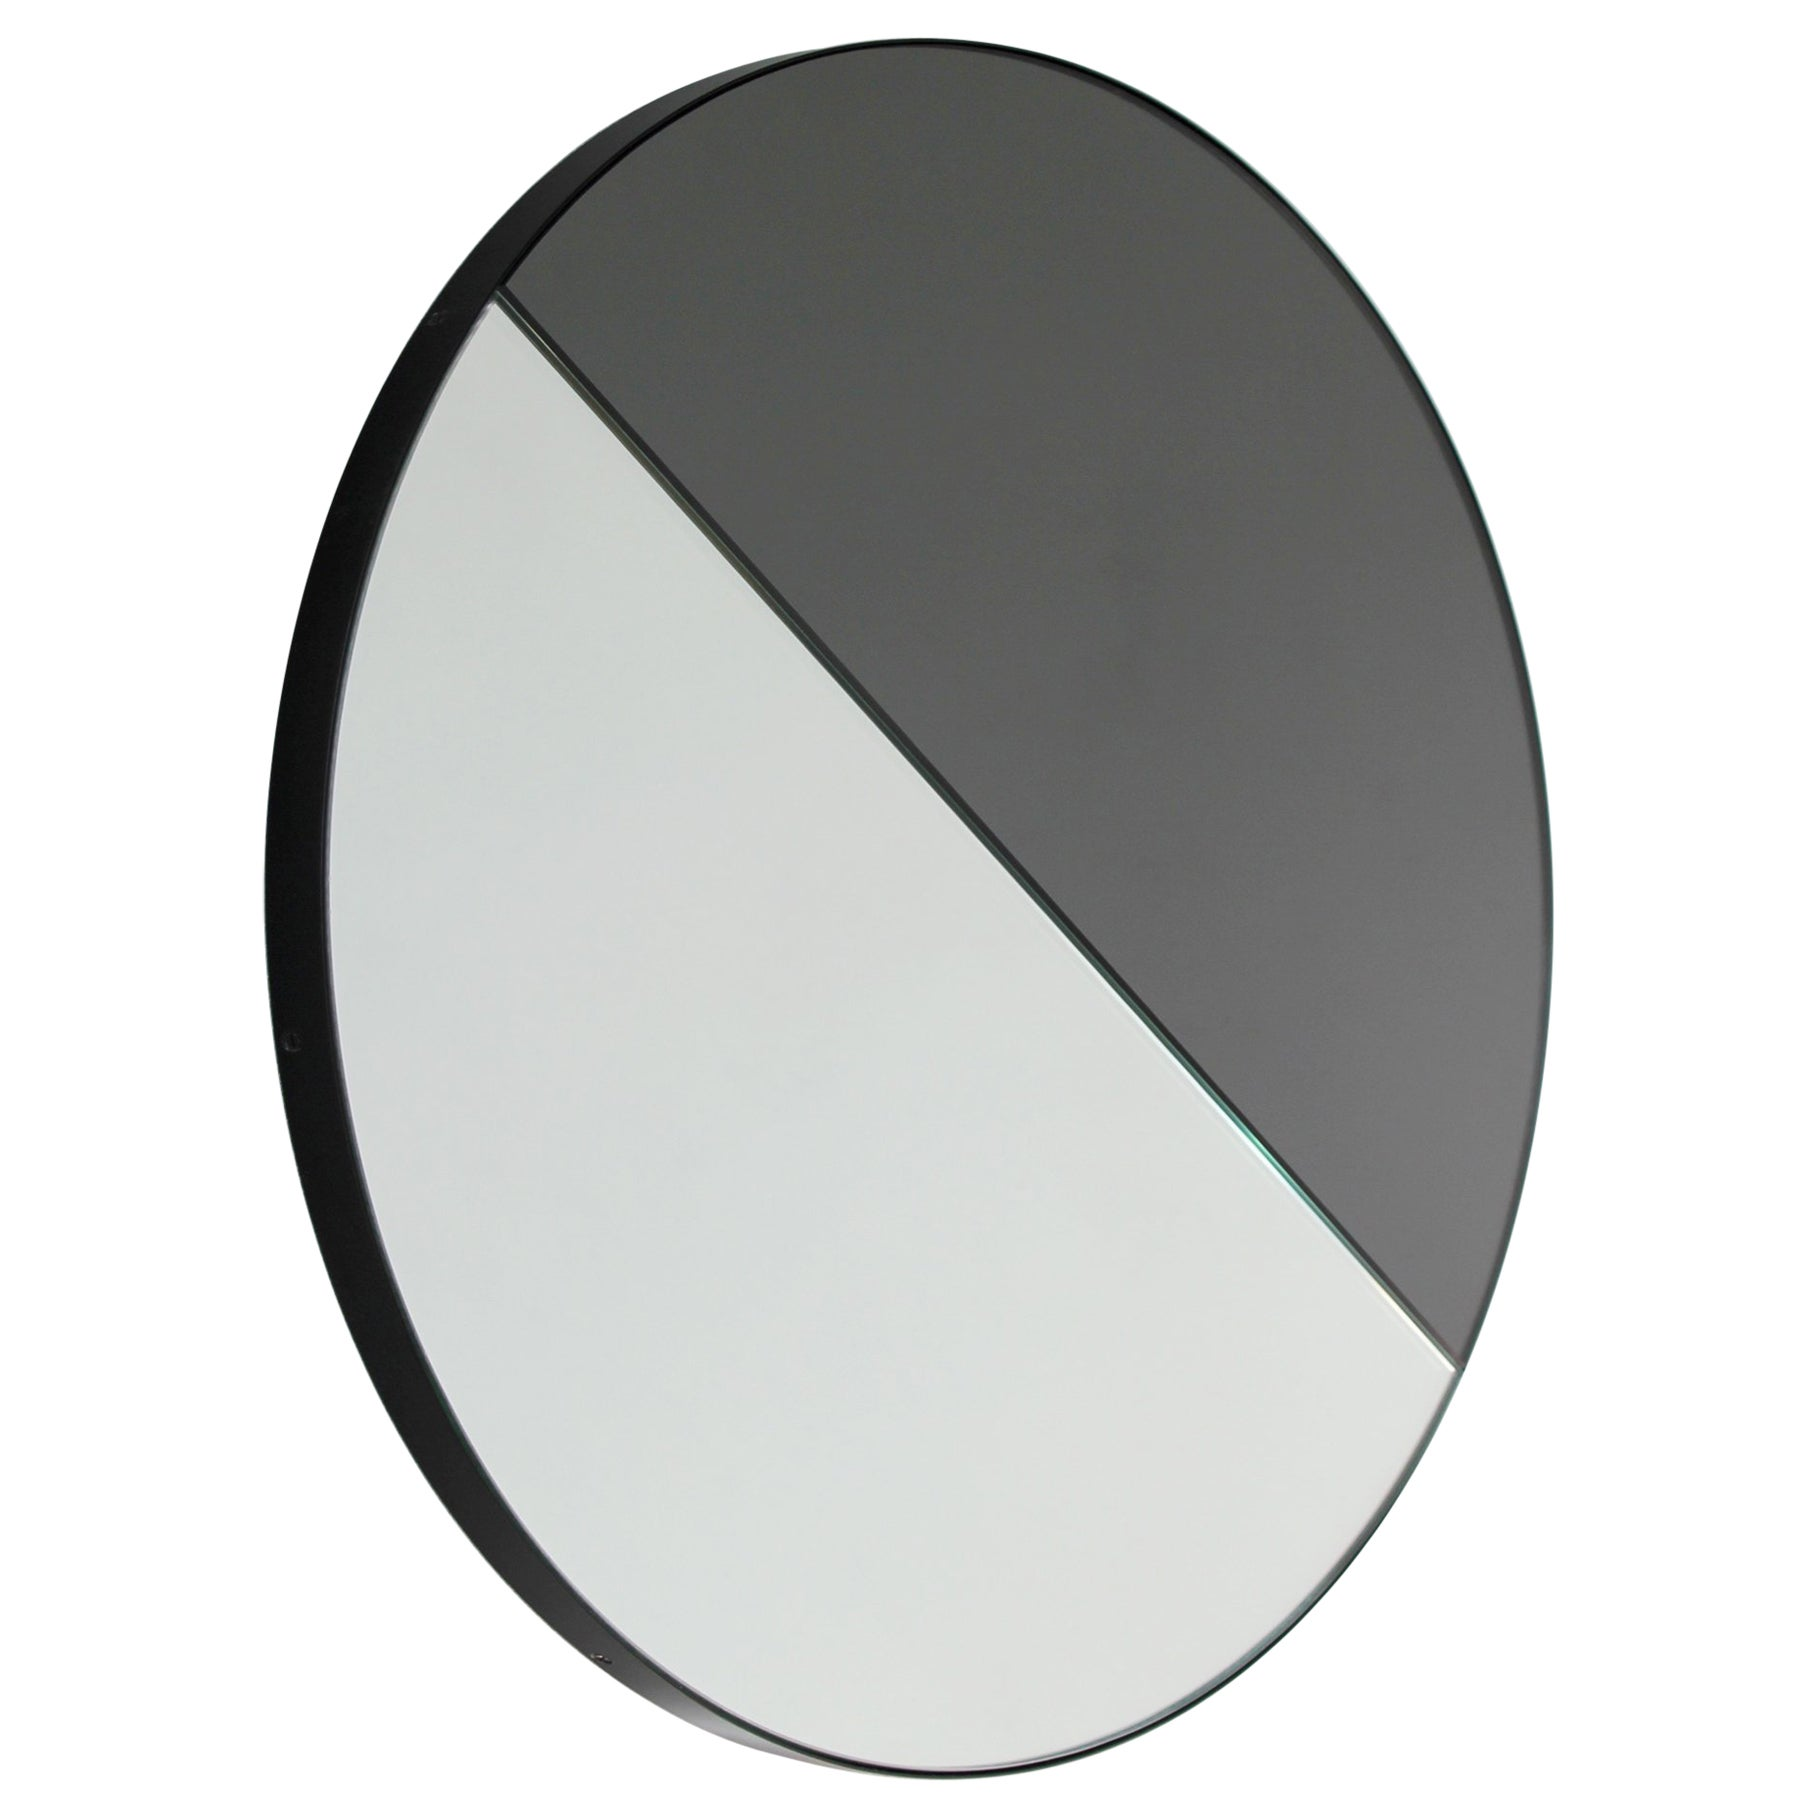 Orbis Dualis™ Mixed Tint (Silver + Black) Round Mirror with Black Frame -Regular